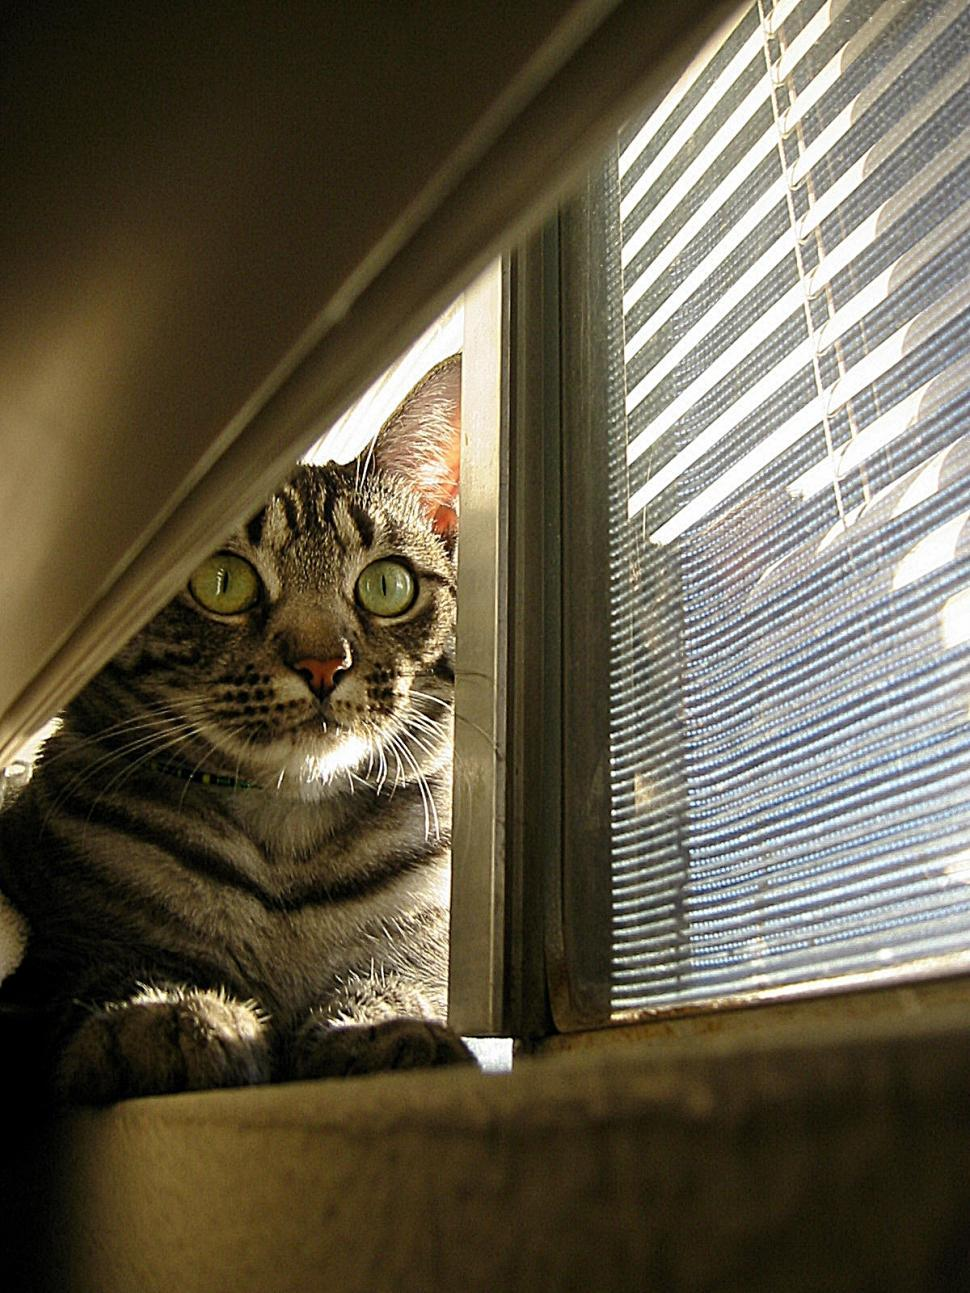 Download Free Stock HD Photo of Cat in Window Online